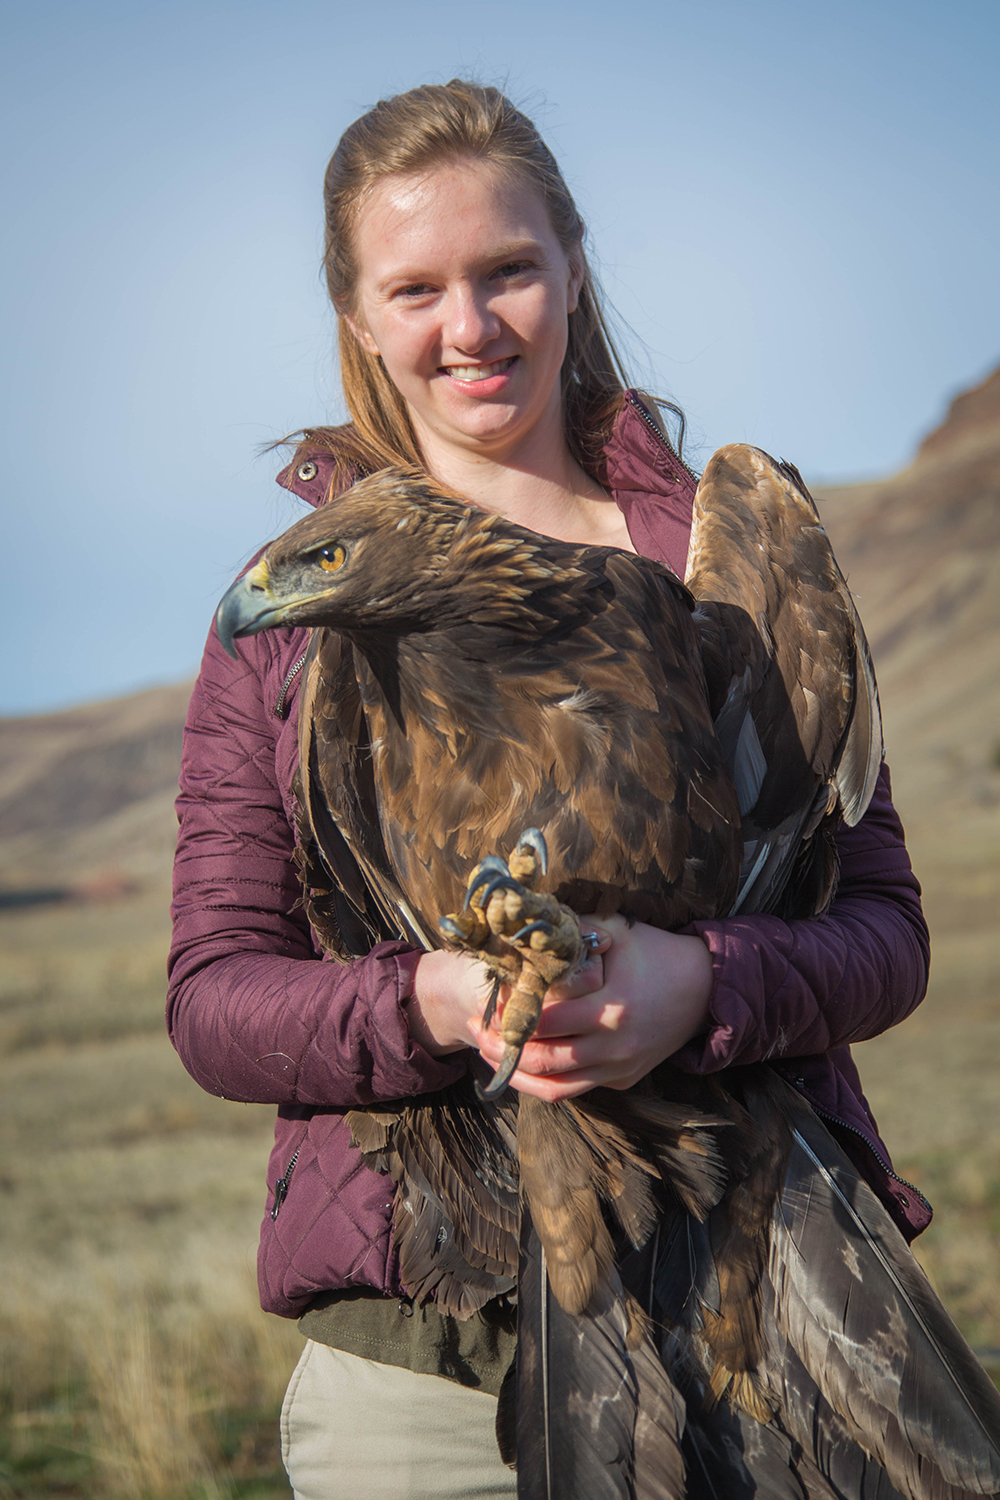 Willow Holding on tight to an Adult Female Golden Eagle